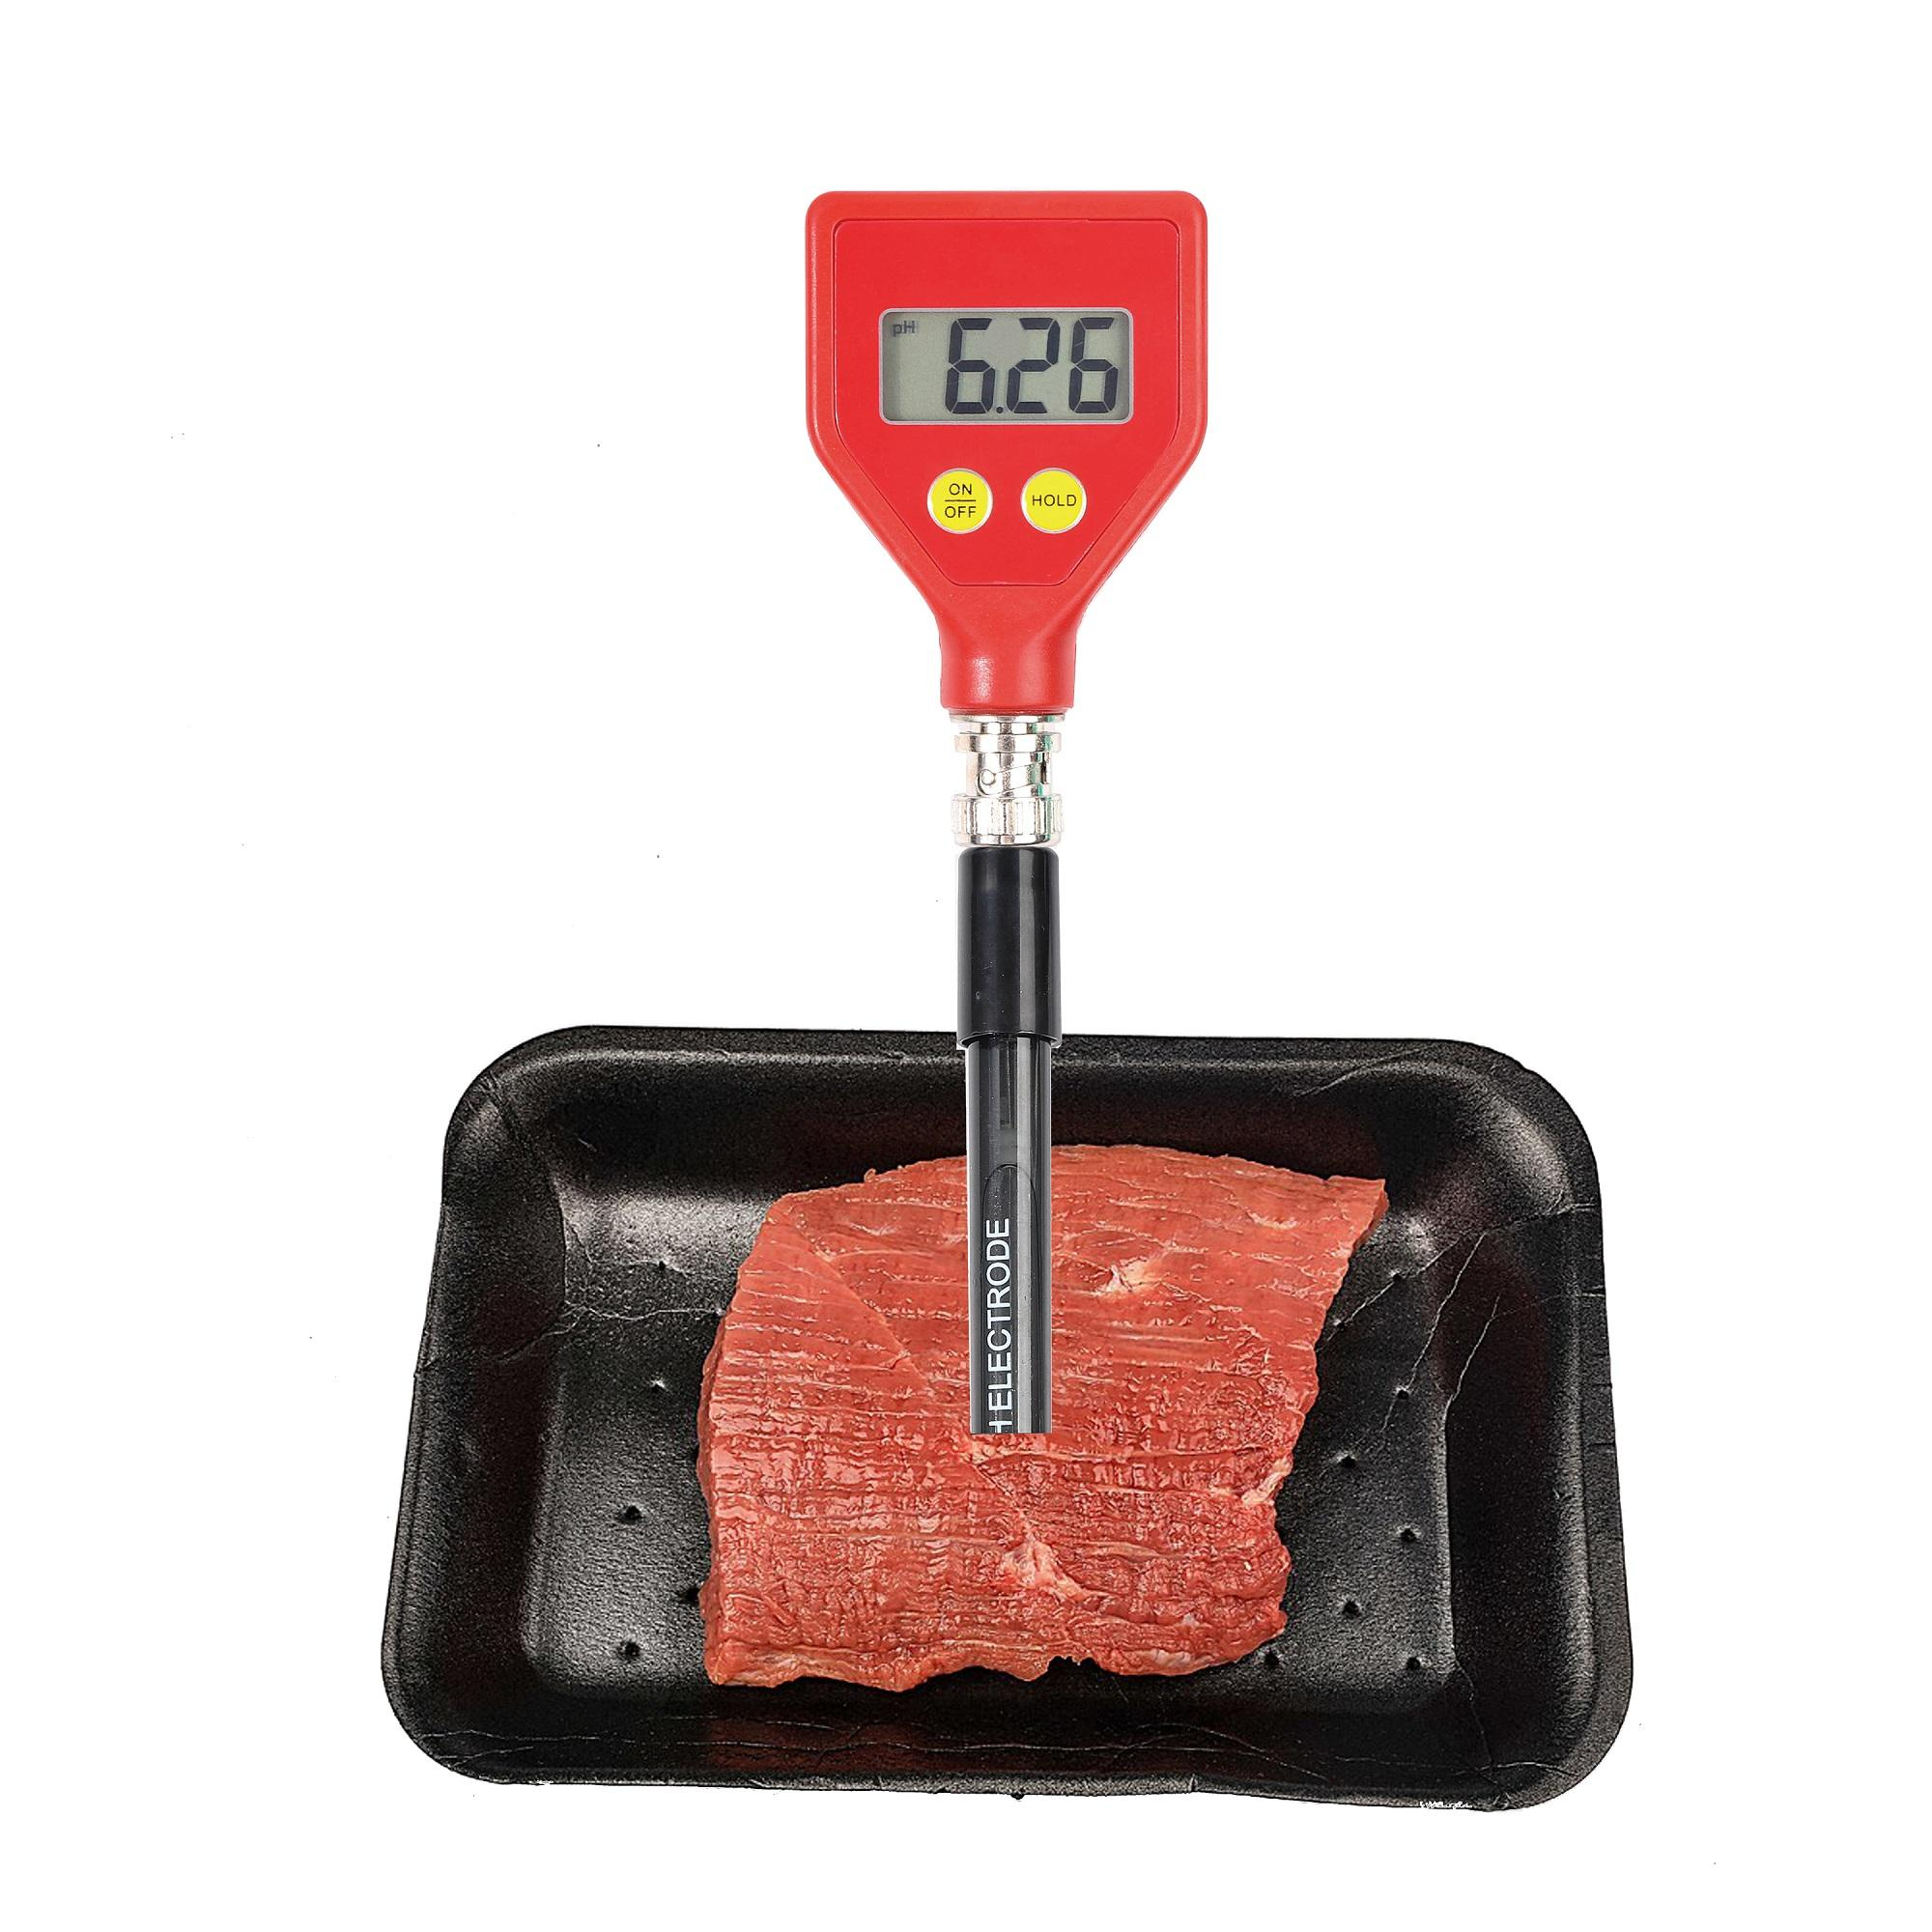 pH checker changeable data hold ph meter digital digital with sharp glass electrode for Water Food Cheese Milk Soil